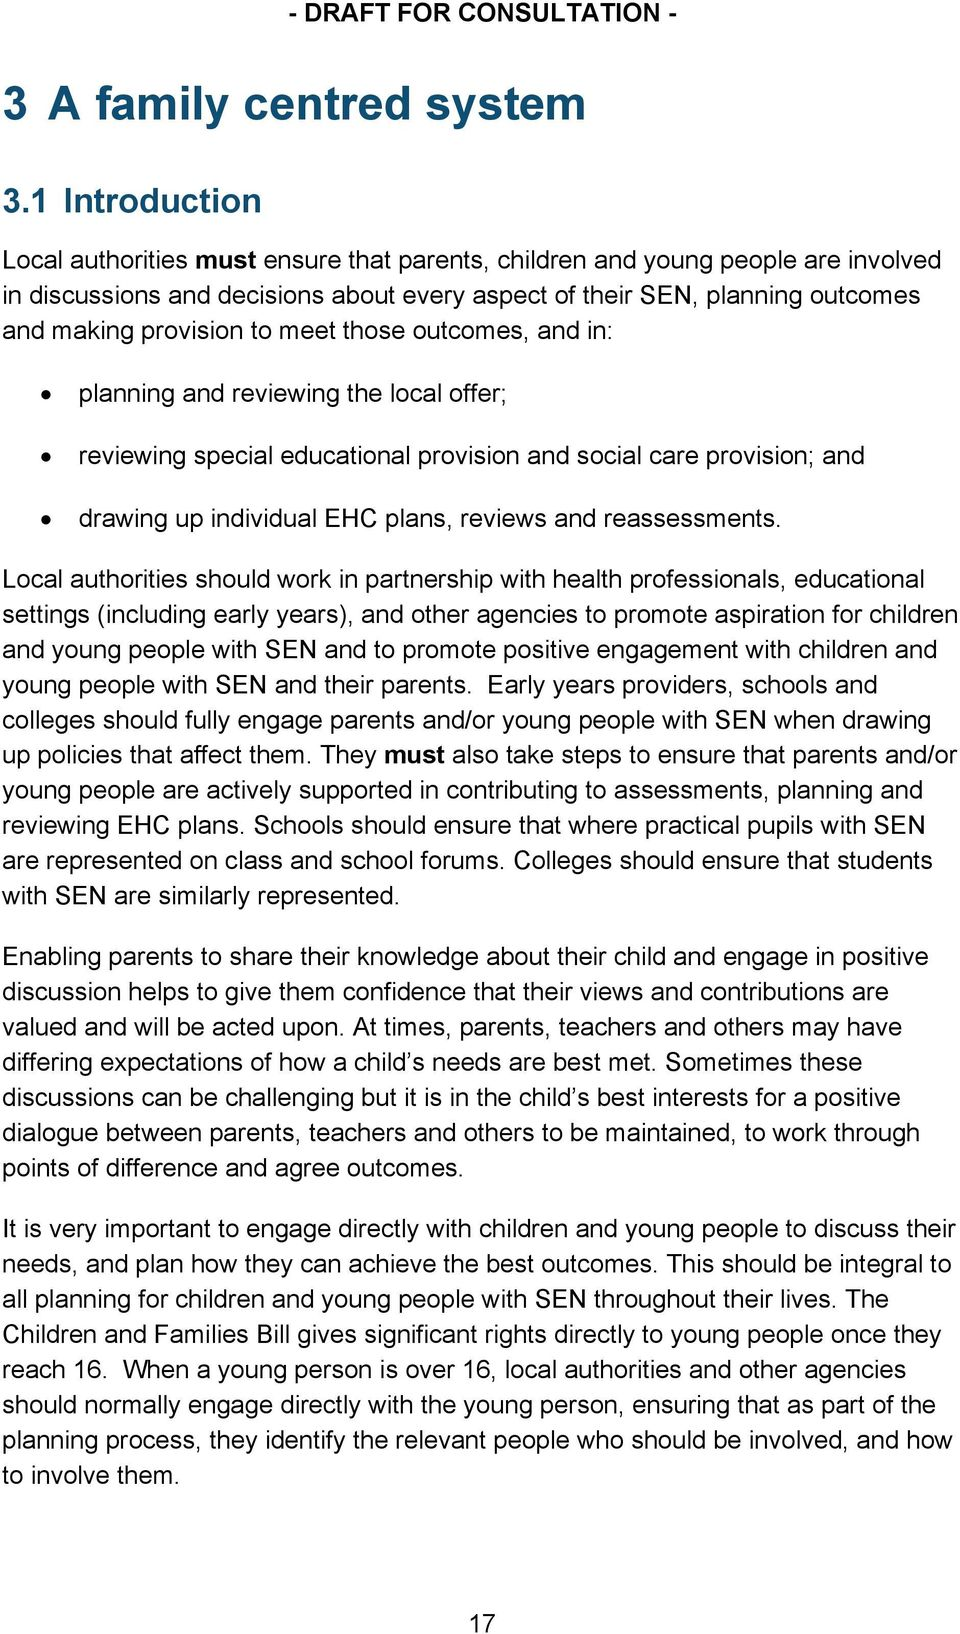 to meet those outcomes, and in: planning and reviewing the local offer; reviewing special educational provision and social care provision; and drawing up individual EHC plans, reviews and